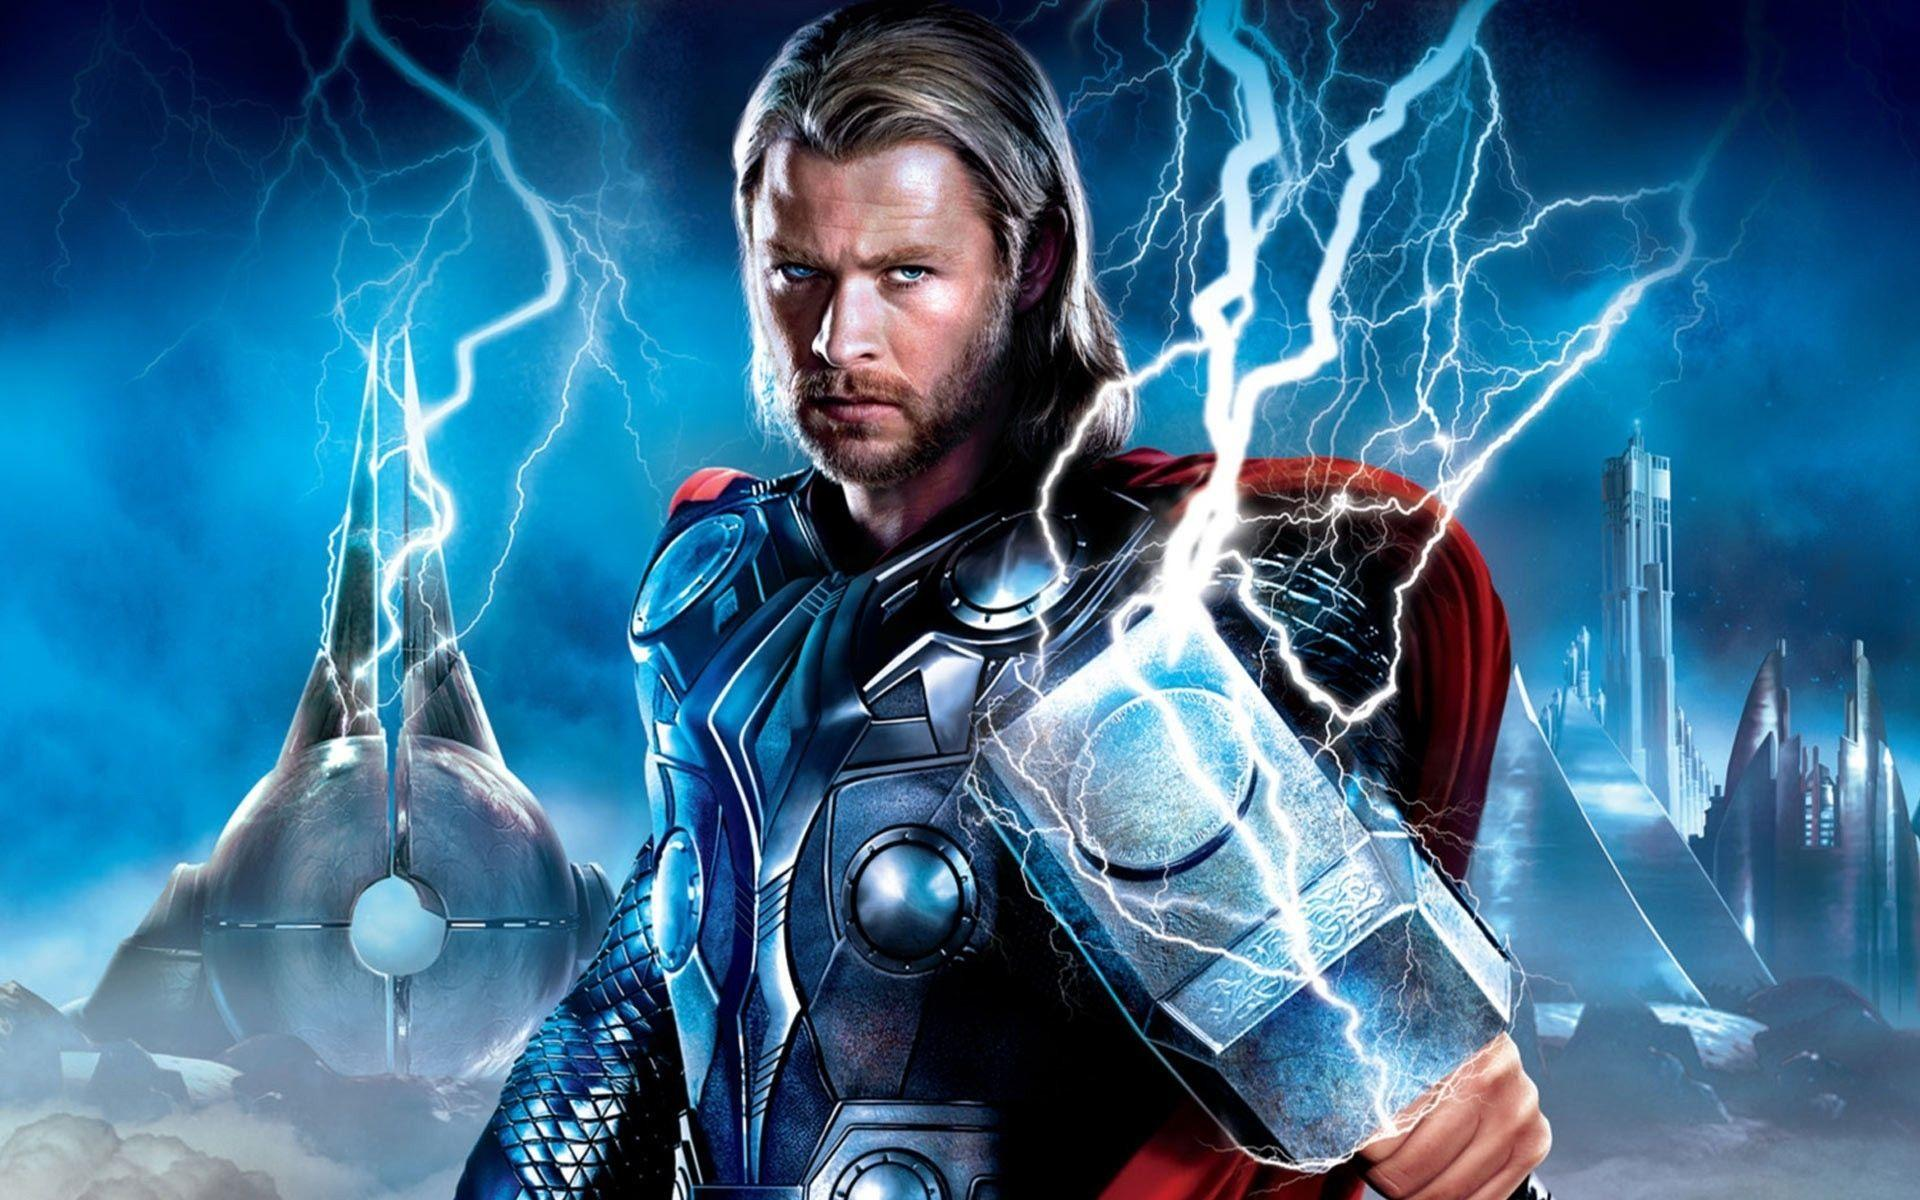 Download Free Thor Wallpapers